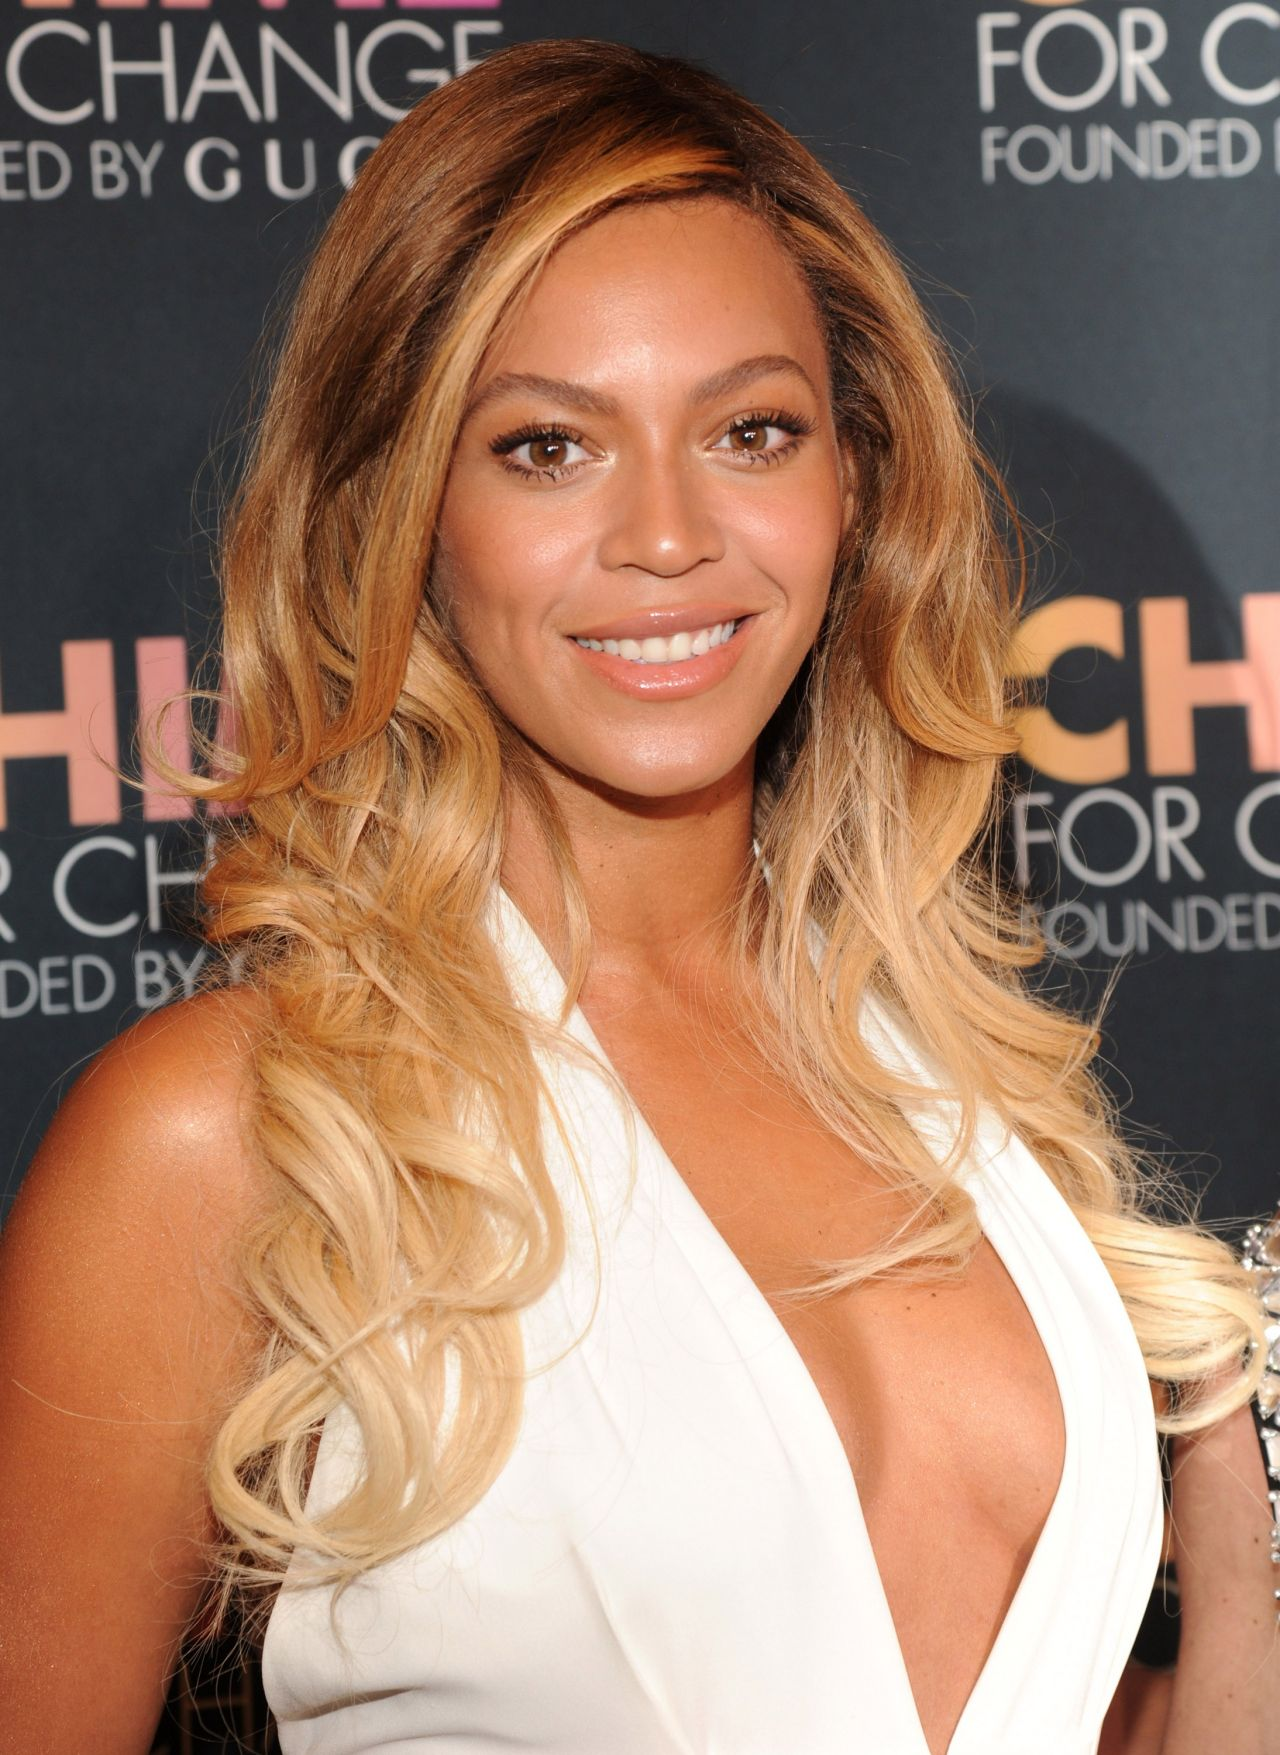 Beyonce - 2014 Chime for Change Event